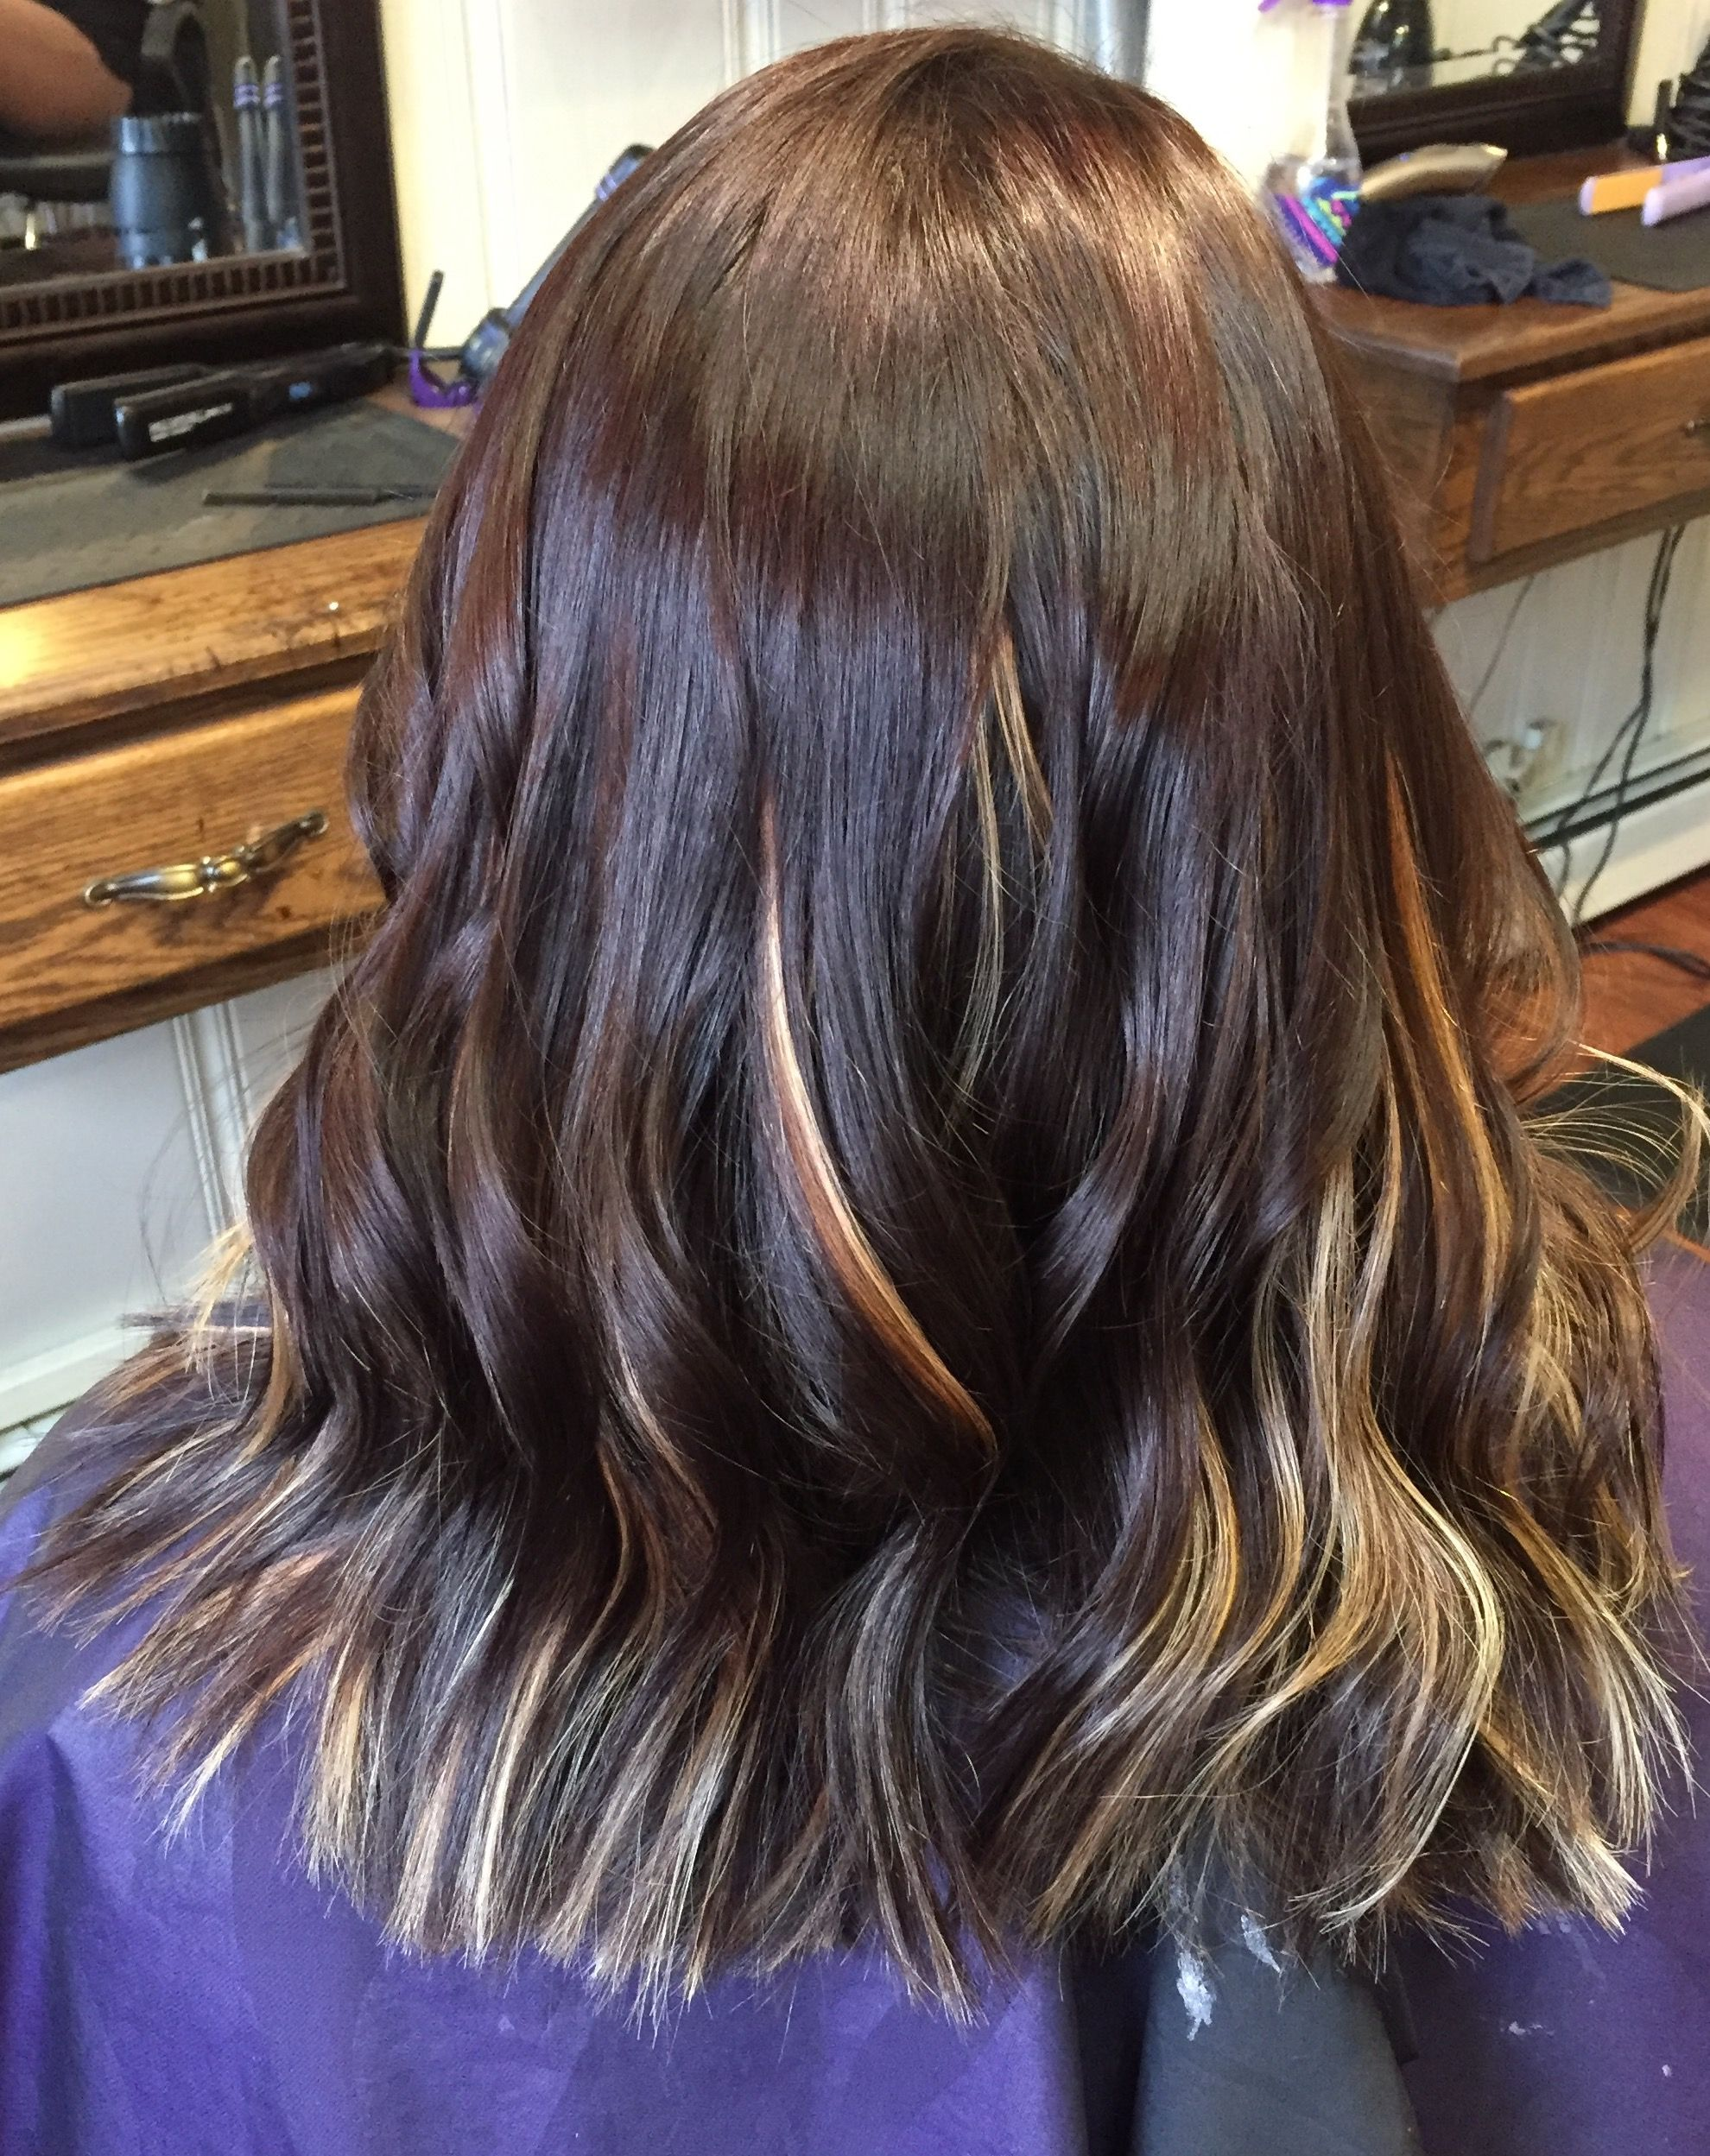 Chunky peekaboo highlights for dark hair images hair extension dark brown hair color with peekaboo light blonde highlights hair dark brown hair color with peekaboo pmusecretfo Gallery